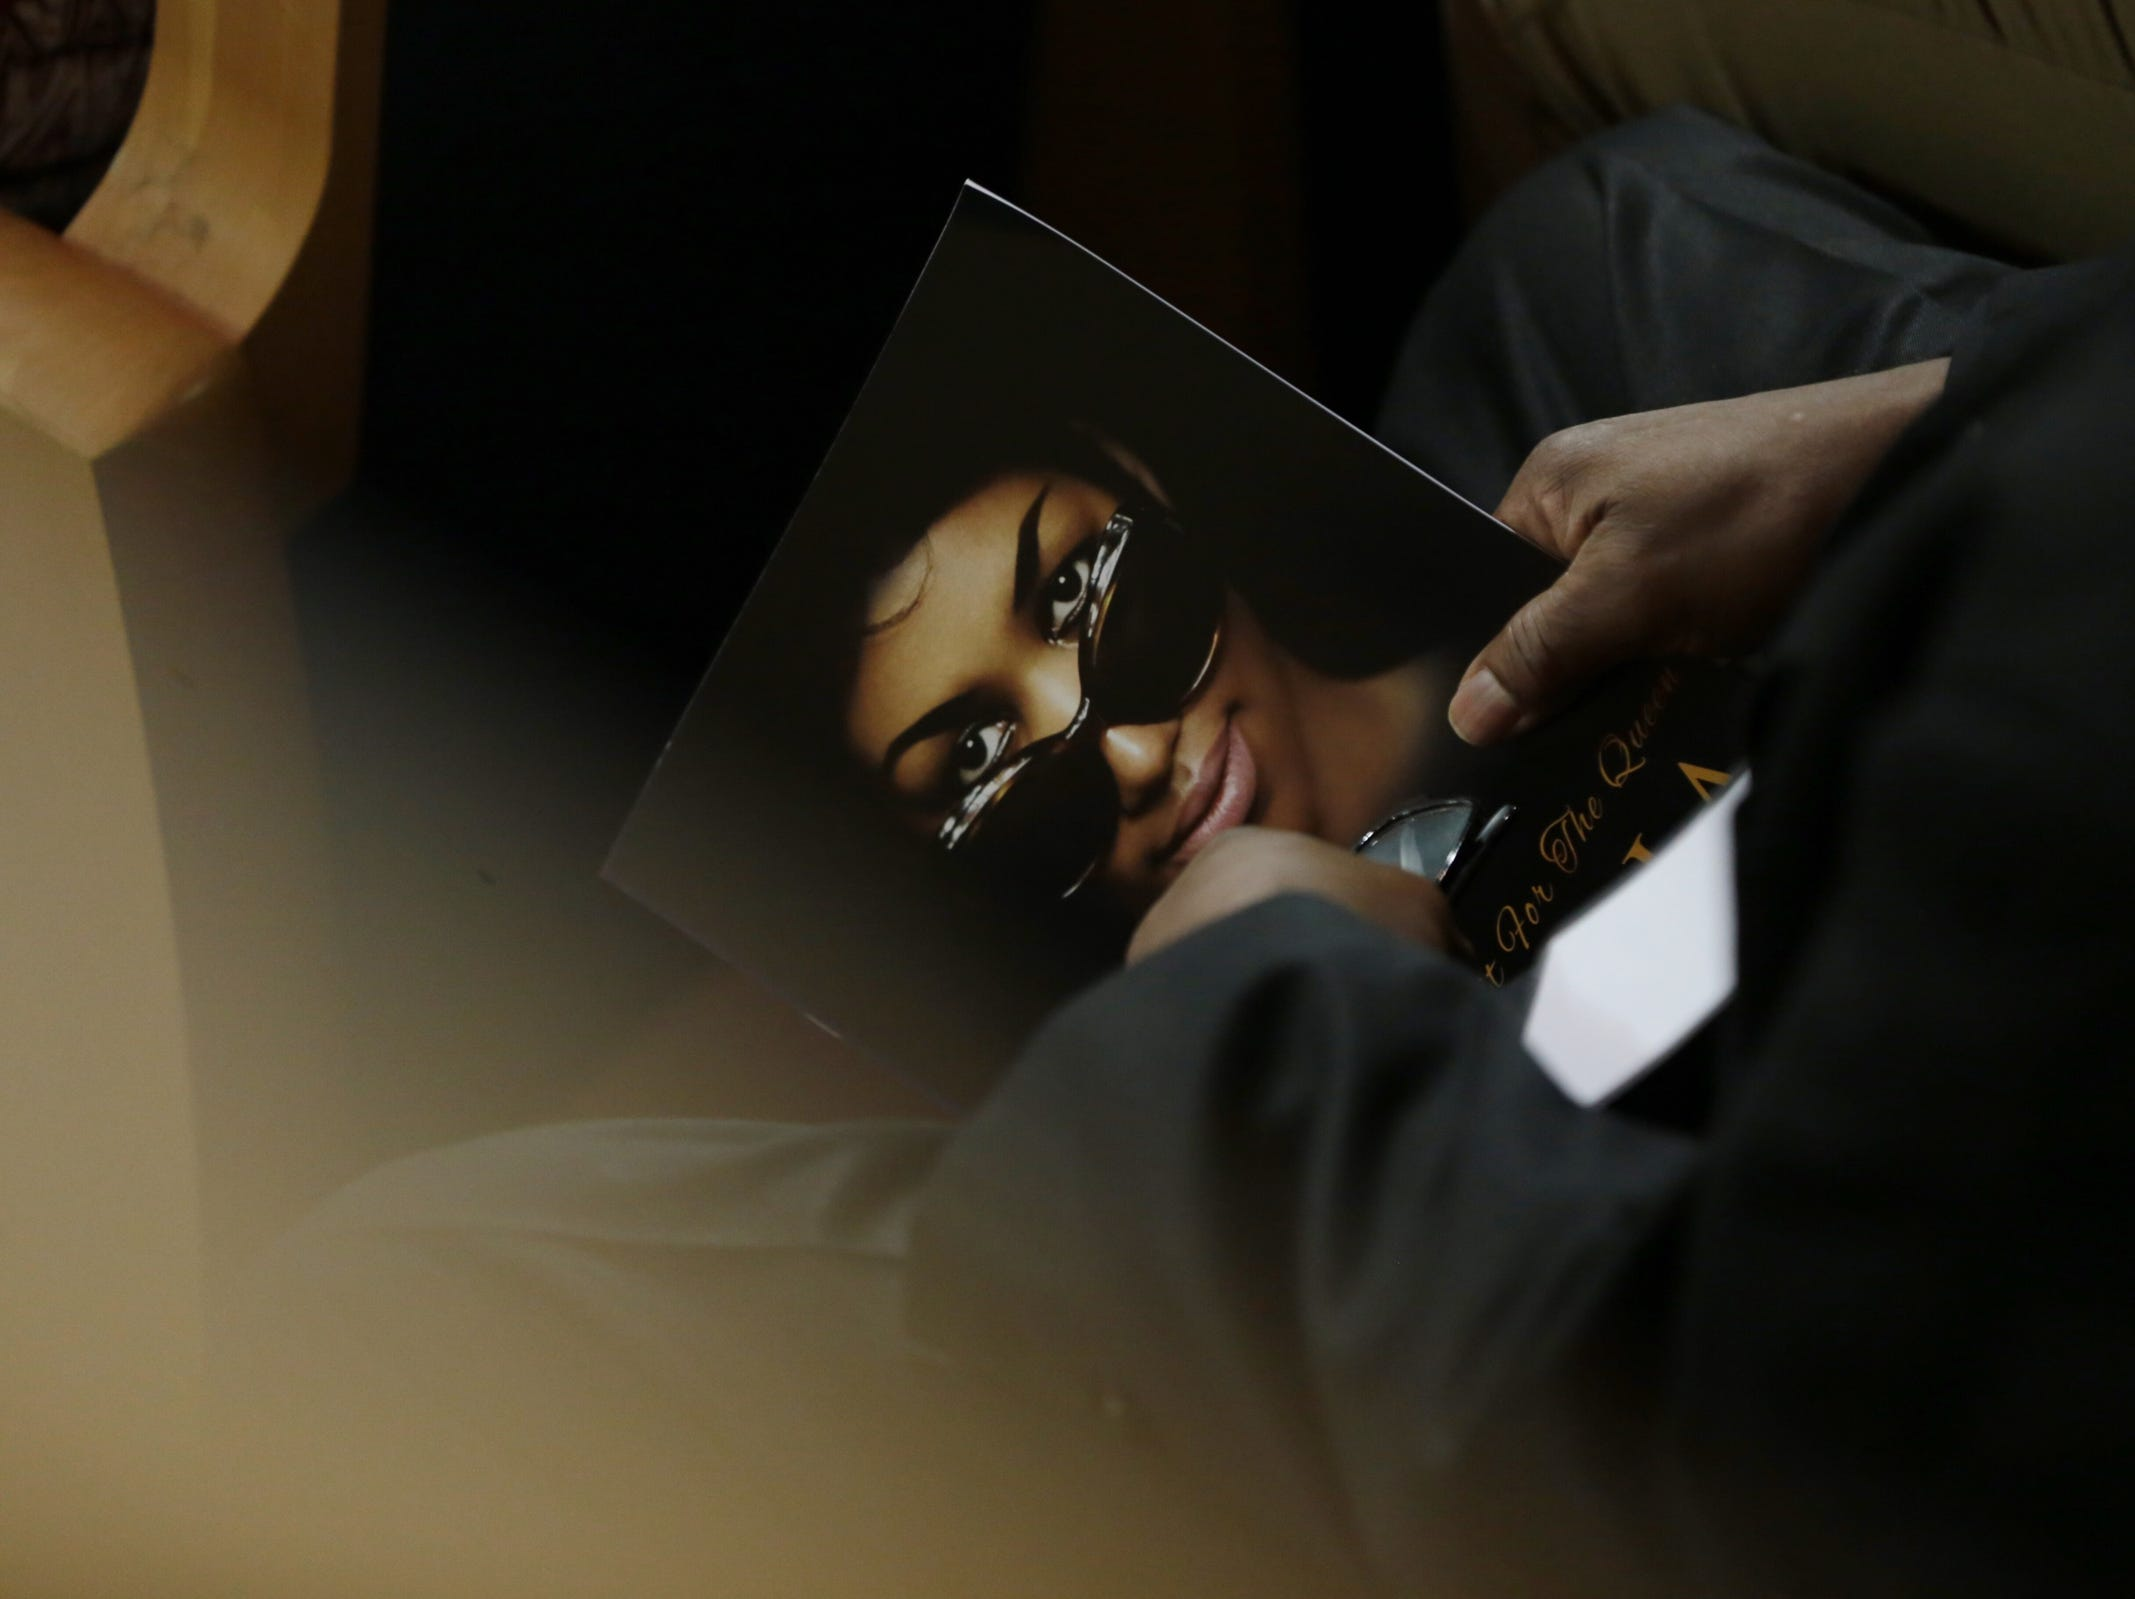 Attendees hold programs during the funeral for the late Aretha Franklin at Greater Grace Temple in Detroit on Friday, August 31, 2018.